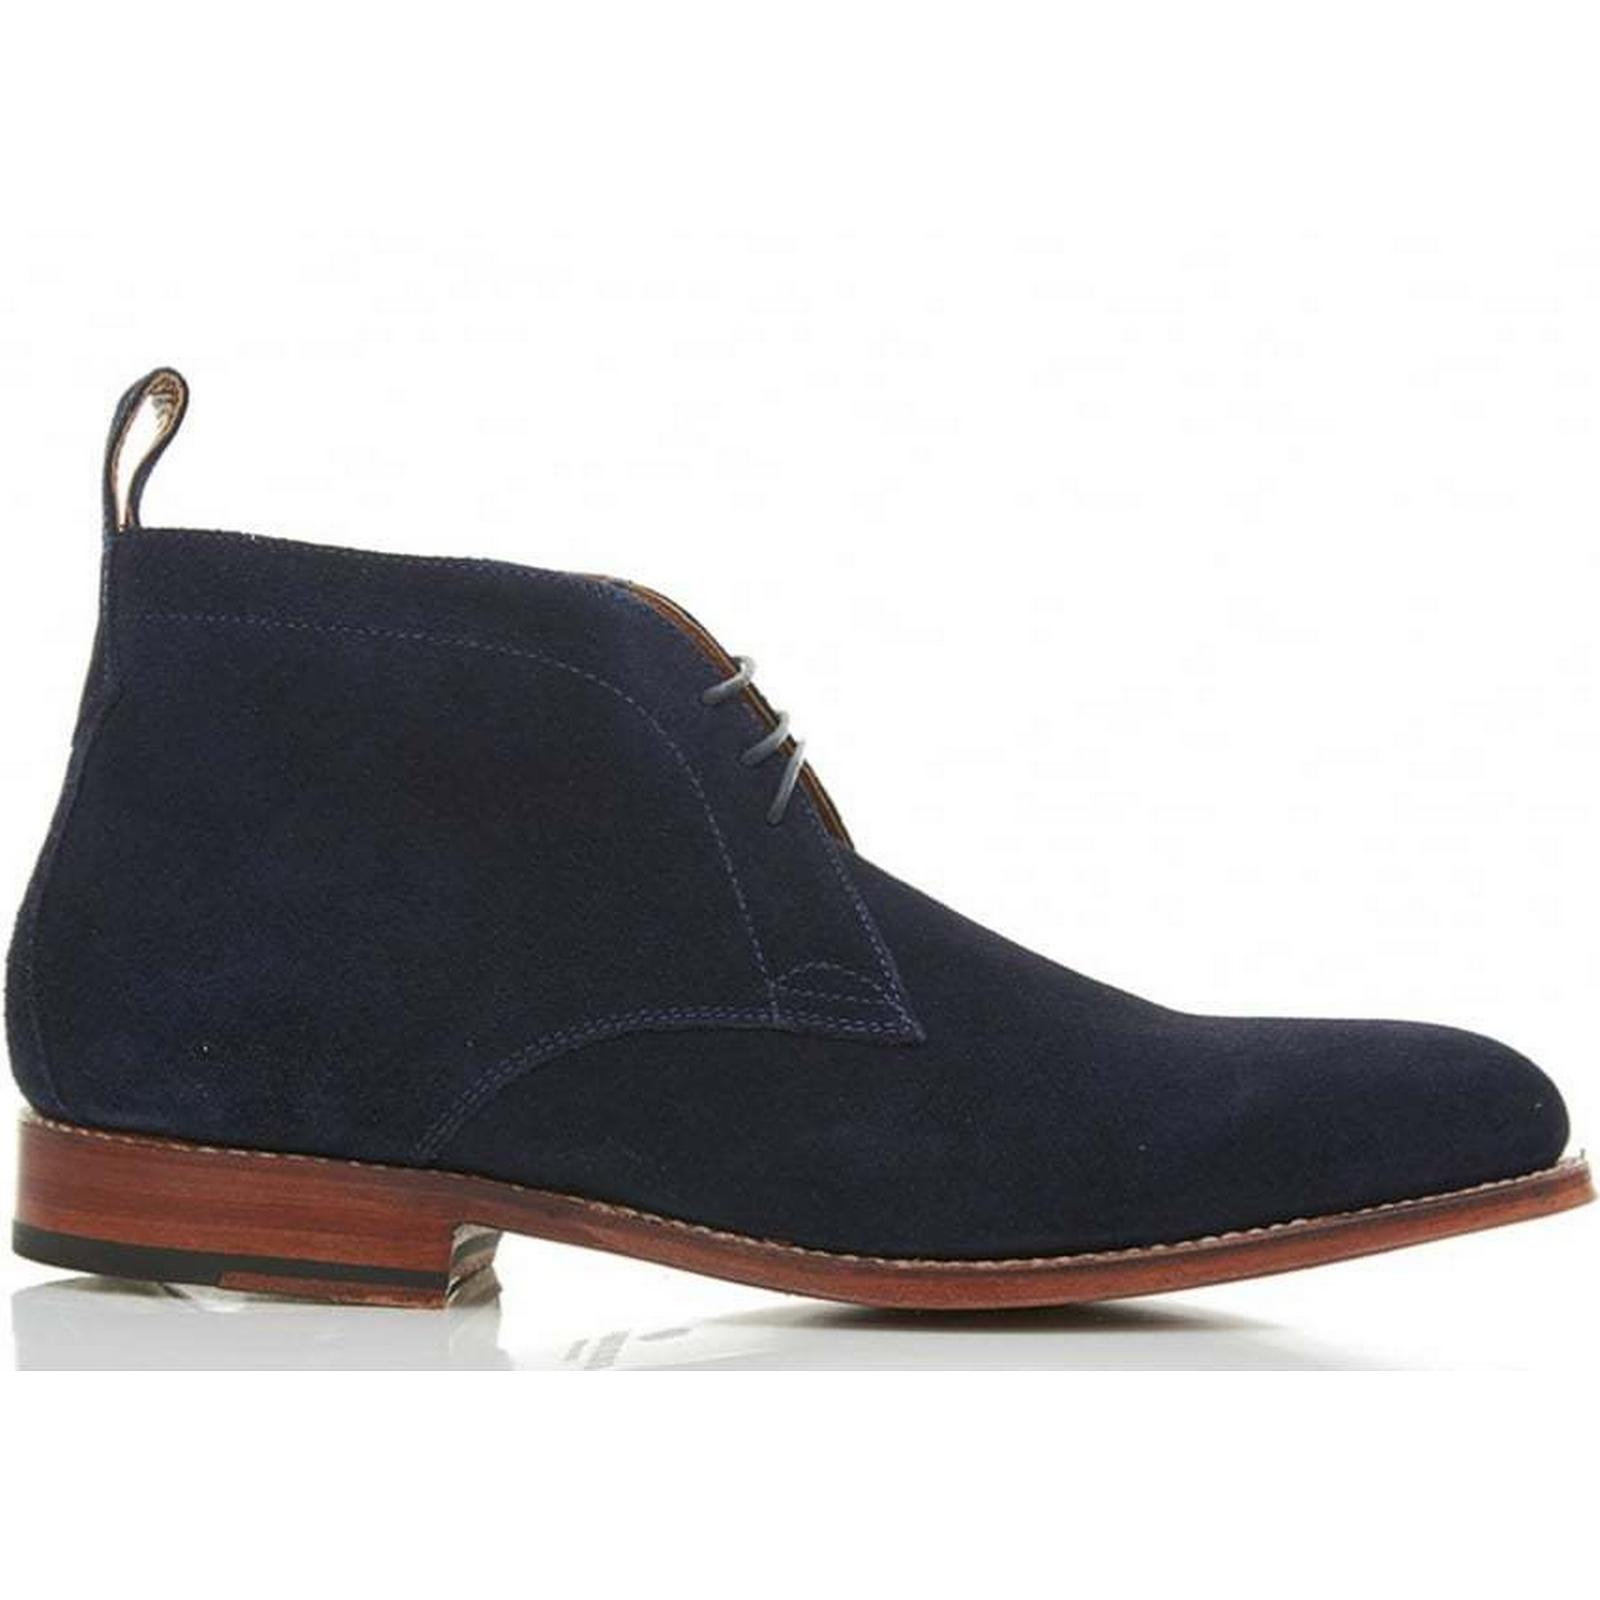 Grenson Marcus Suede Chukka Size: Boot Colour: NAVY, Size: Chukka 11 3bacce